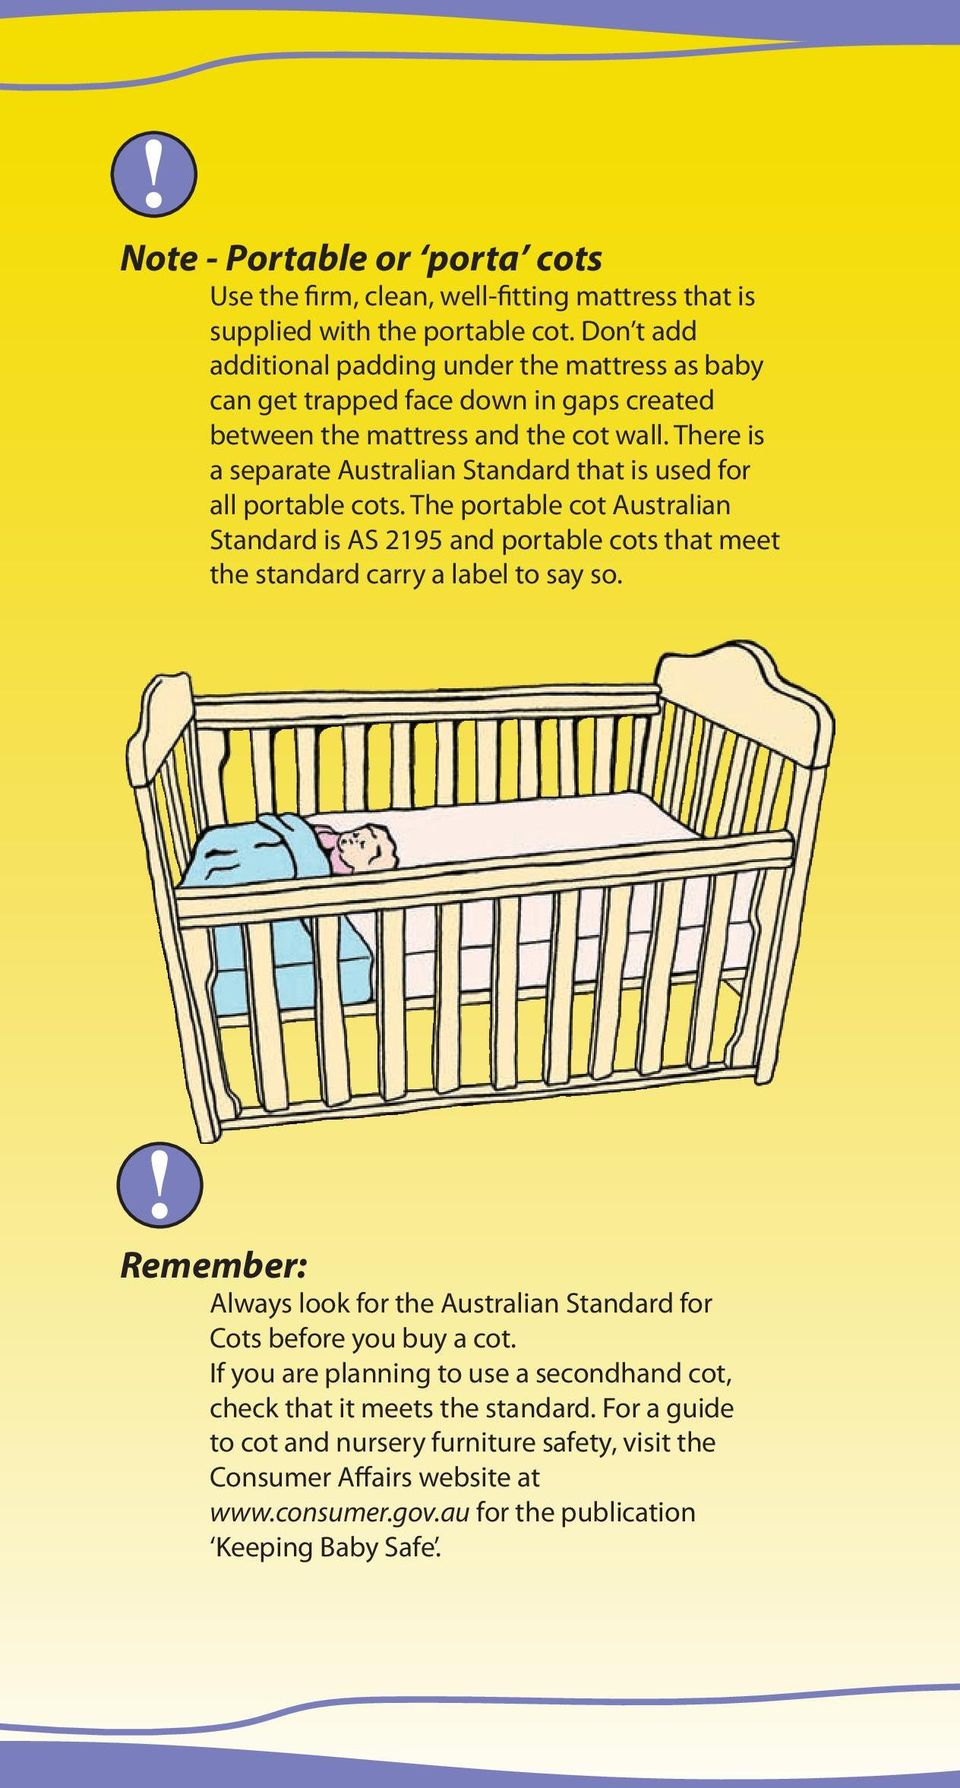 There is a separate Australian Standard that is used for all portable cots.